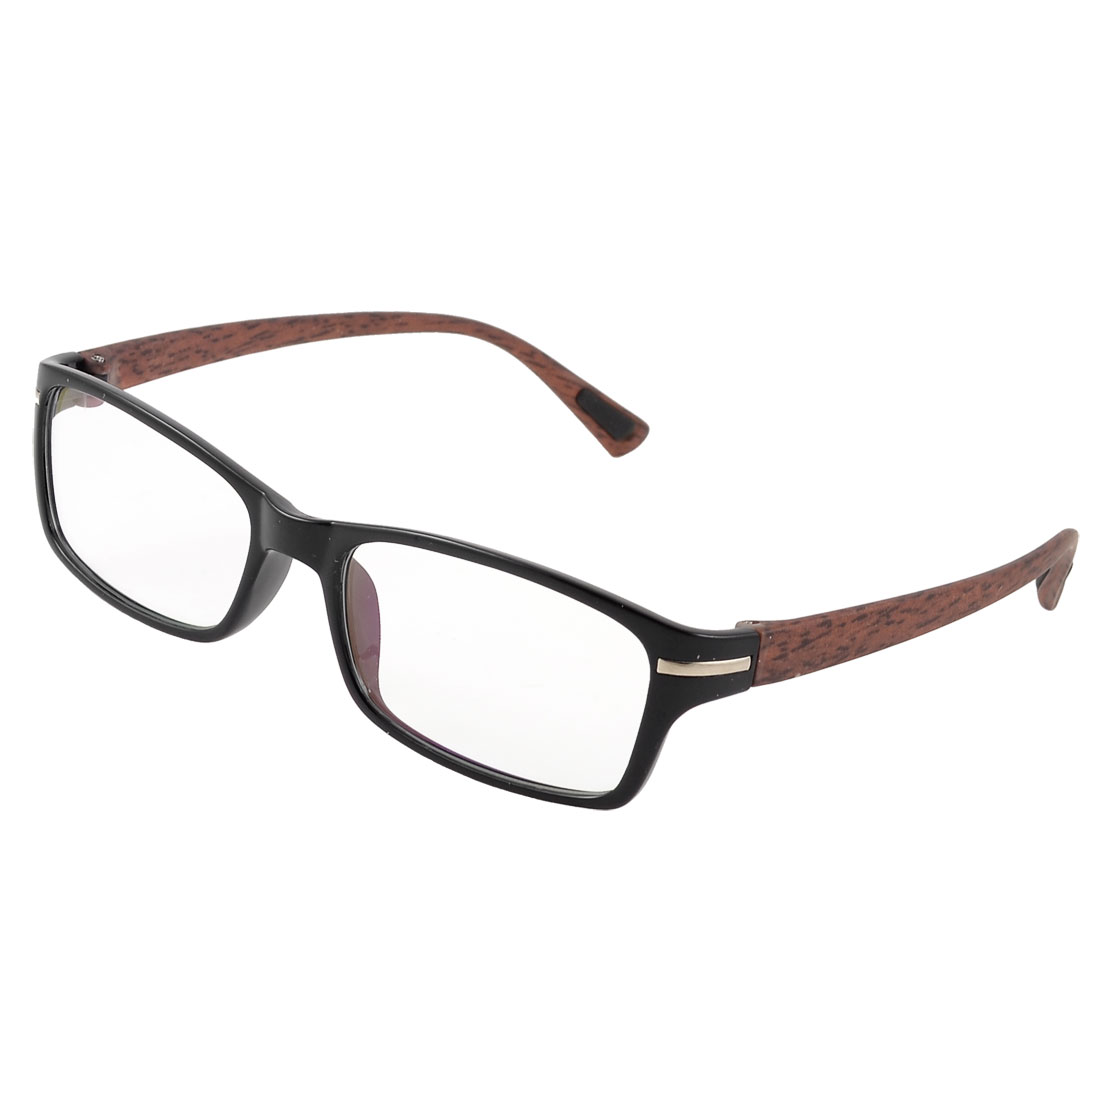 Ladies Men Black Rectangle Full Rim Brown Wood Grain Arms MC Lens Plano Glasses